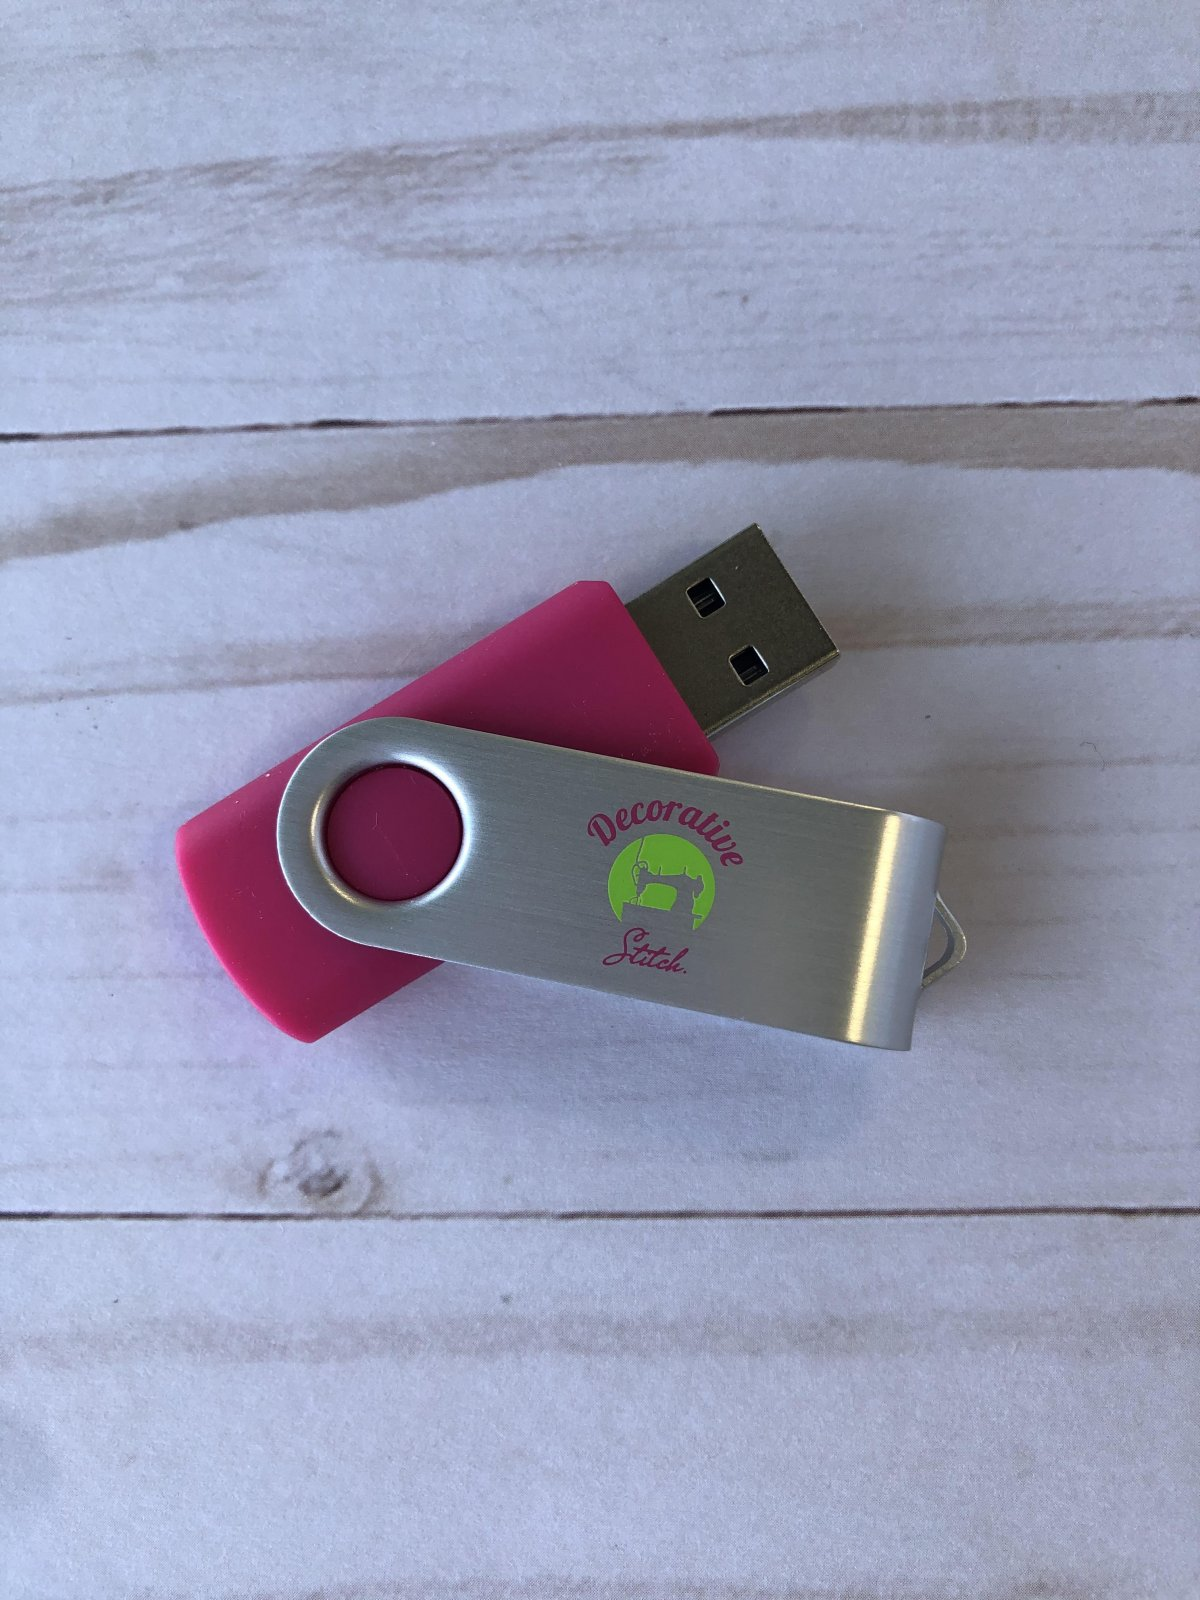 Decorative Stitch Pink 4GB USB